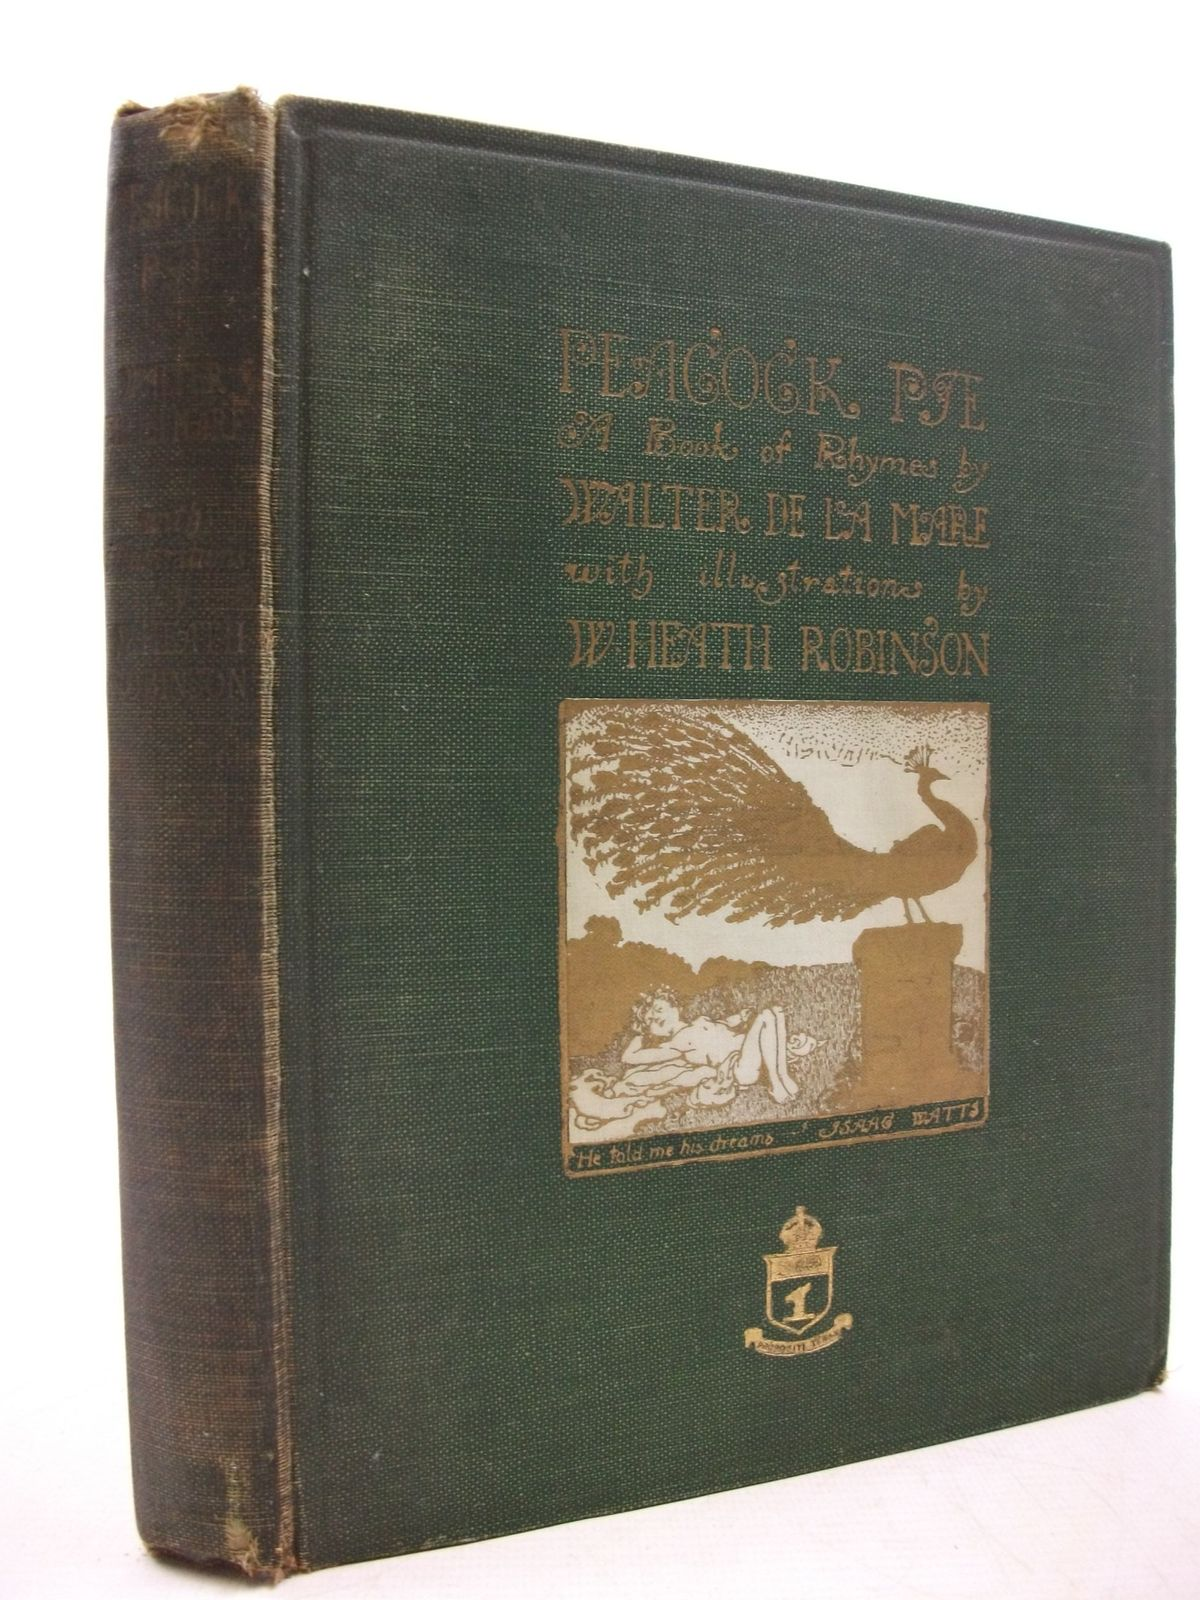 Photo of PEACOCK PIE - A BOOK OF RHYMES written by De La Mare, Walter illustrated by Robinson, W. Heath published by Constable and Company Ltd. (STOCK CODE: 2111414)  for sale by Stella & Rose's Books